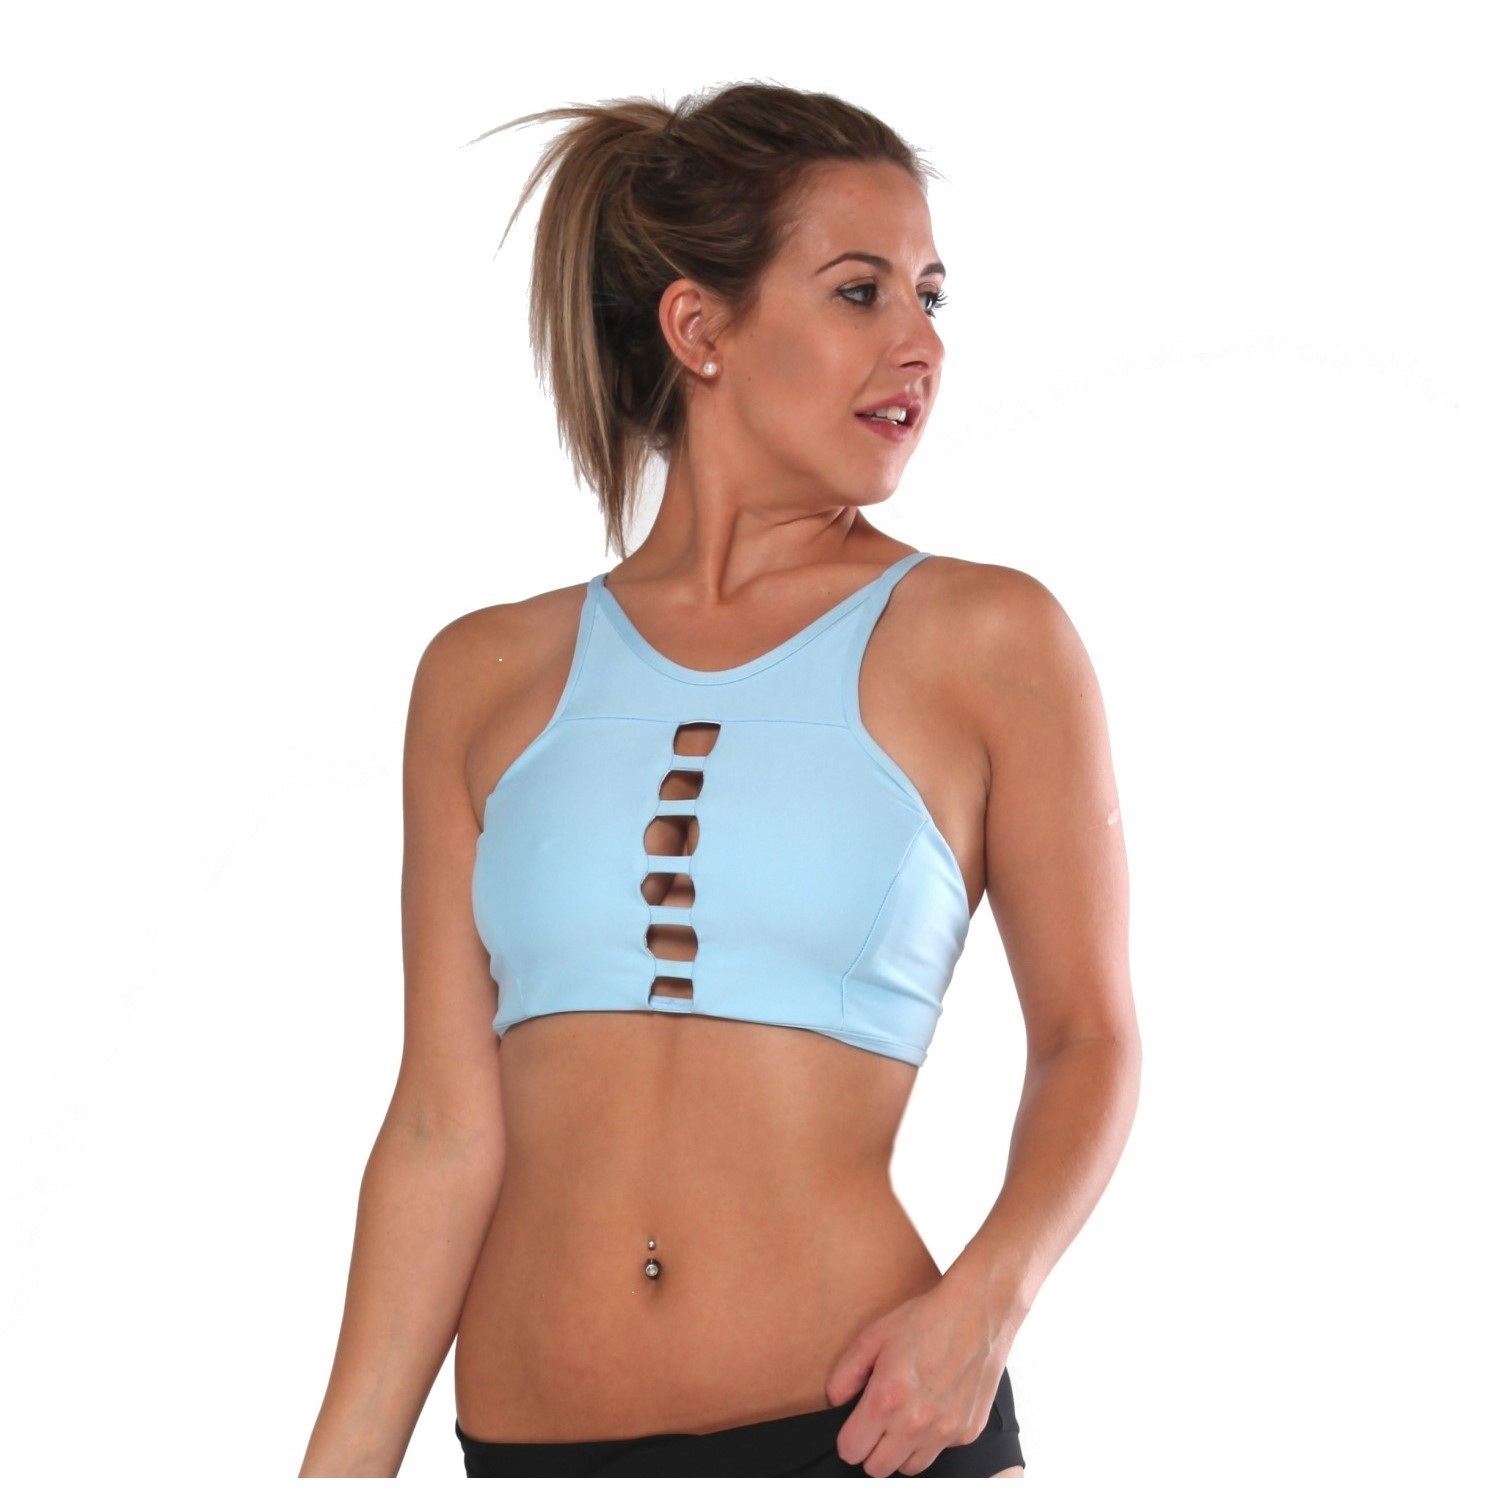 adbf89631ed55 Rhapso Designs 22BB Strappy Tank Crop Top - Light Blue